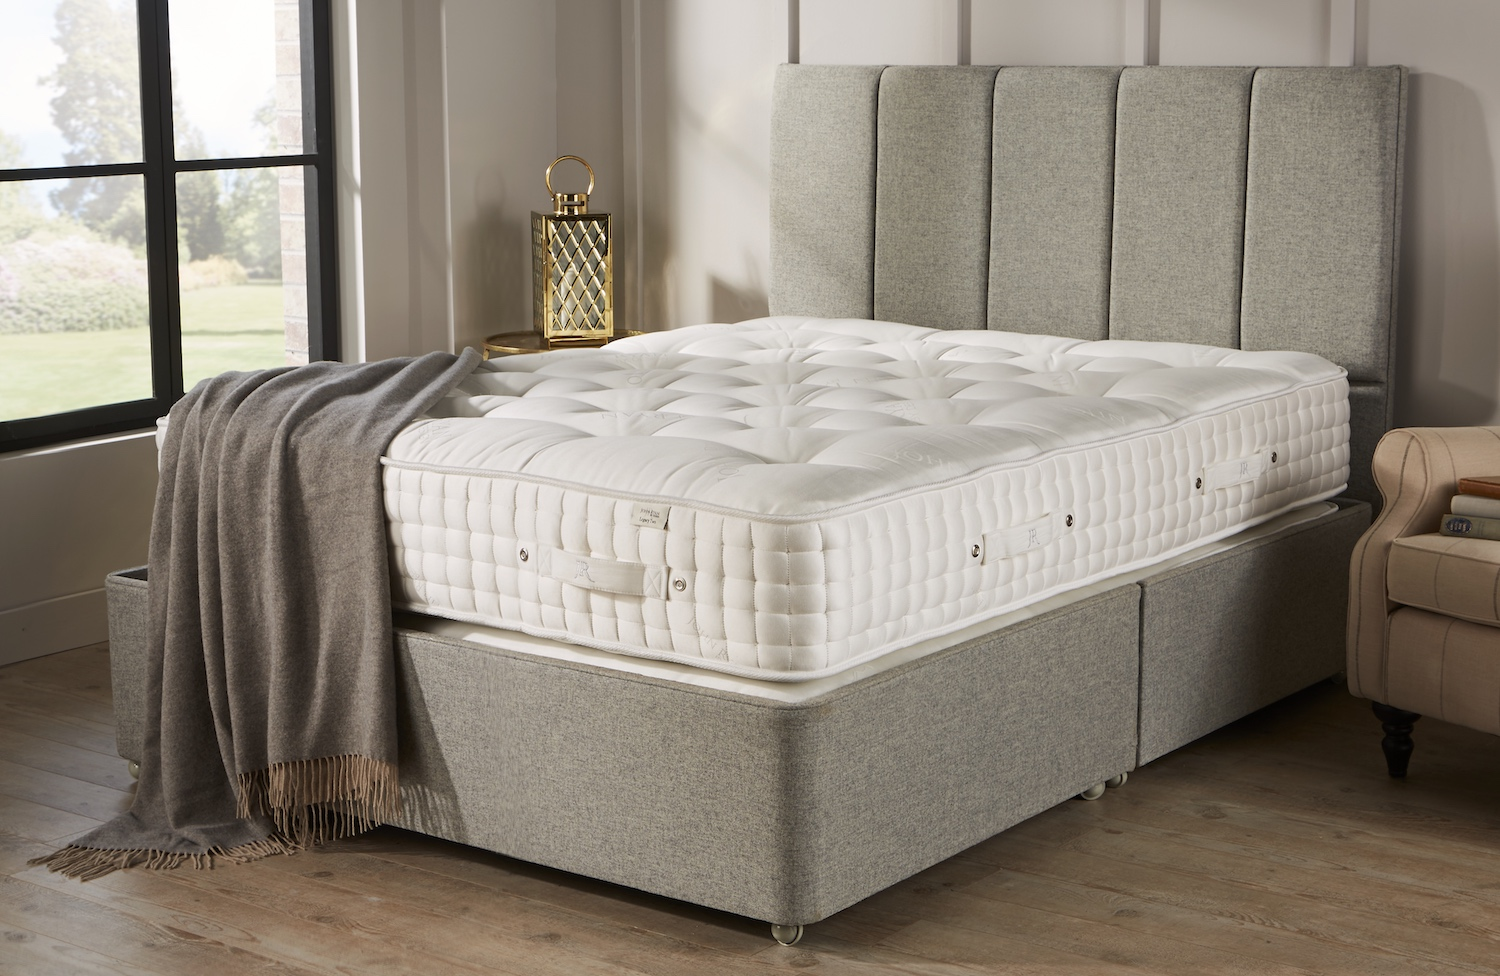 Help With Purchasing A Mattress John Ryan By Design